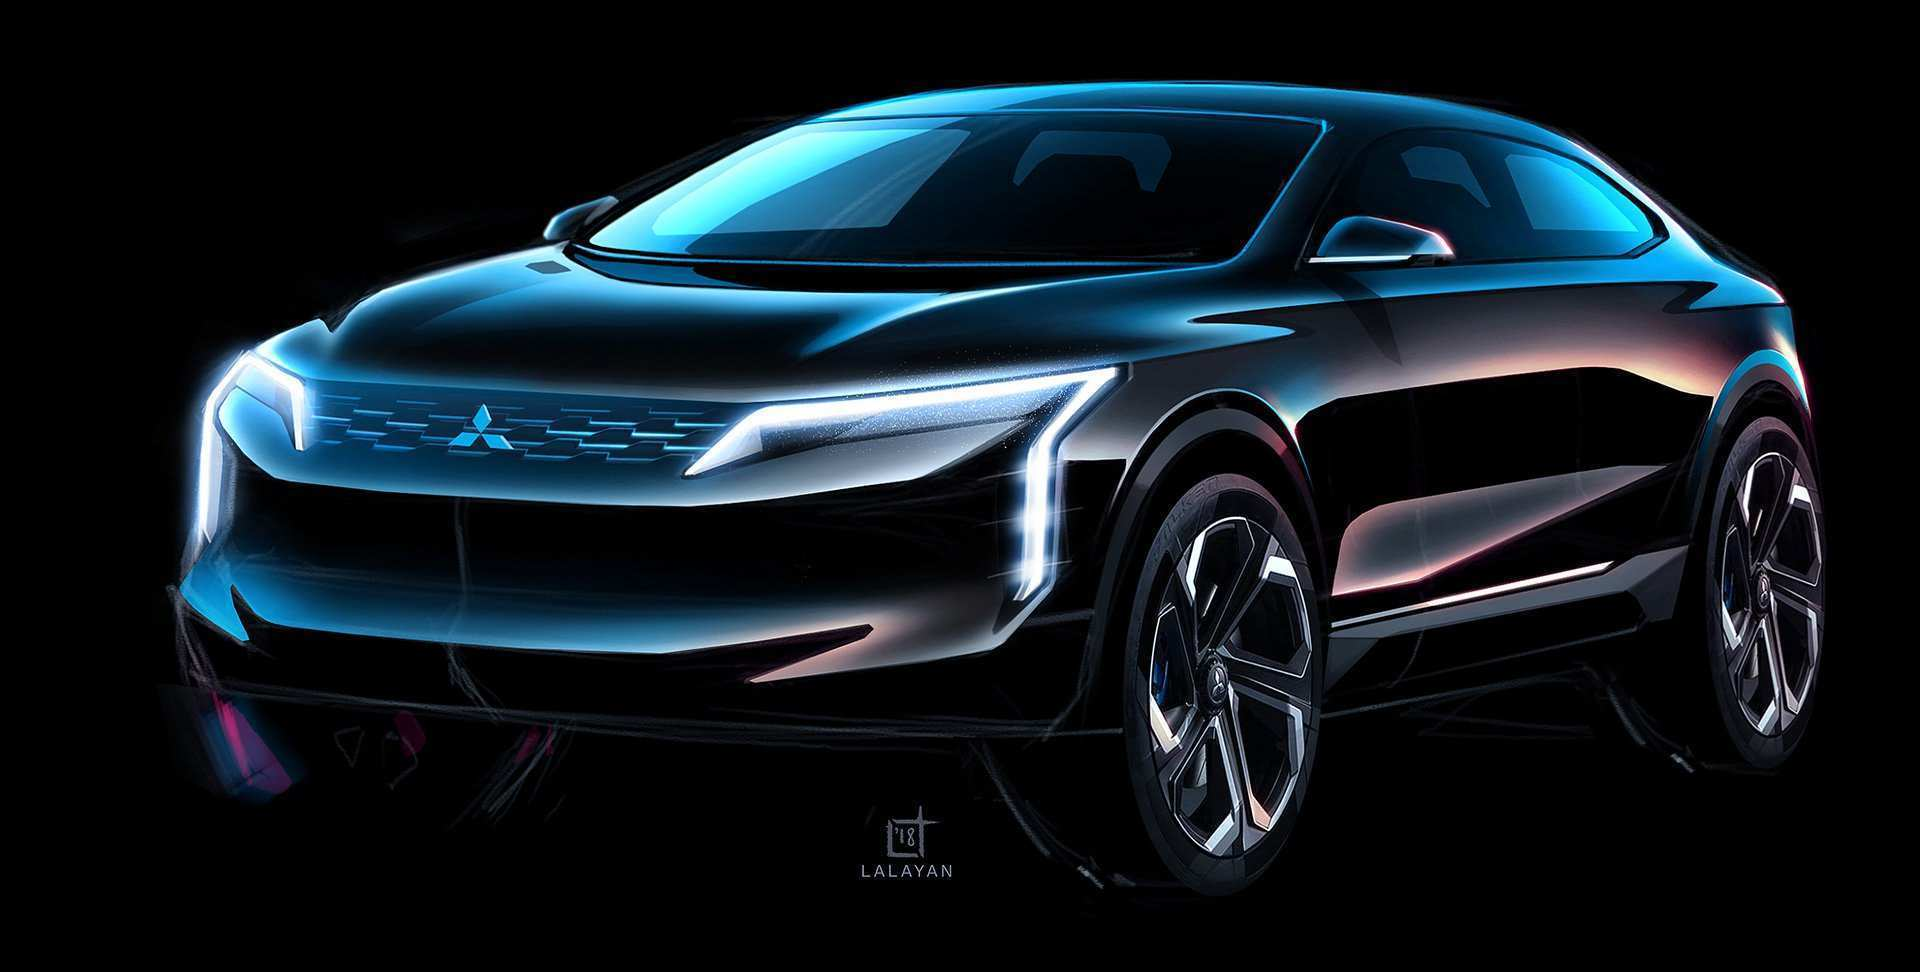 44 Great 2020 Mitsubishi Galant Redesign and Concept with 2020 Mitsubishi Galant